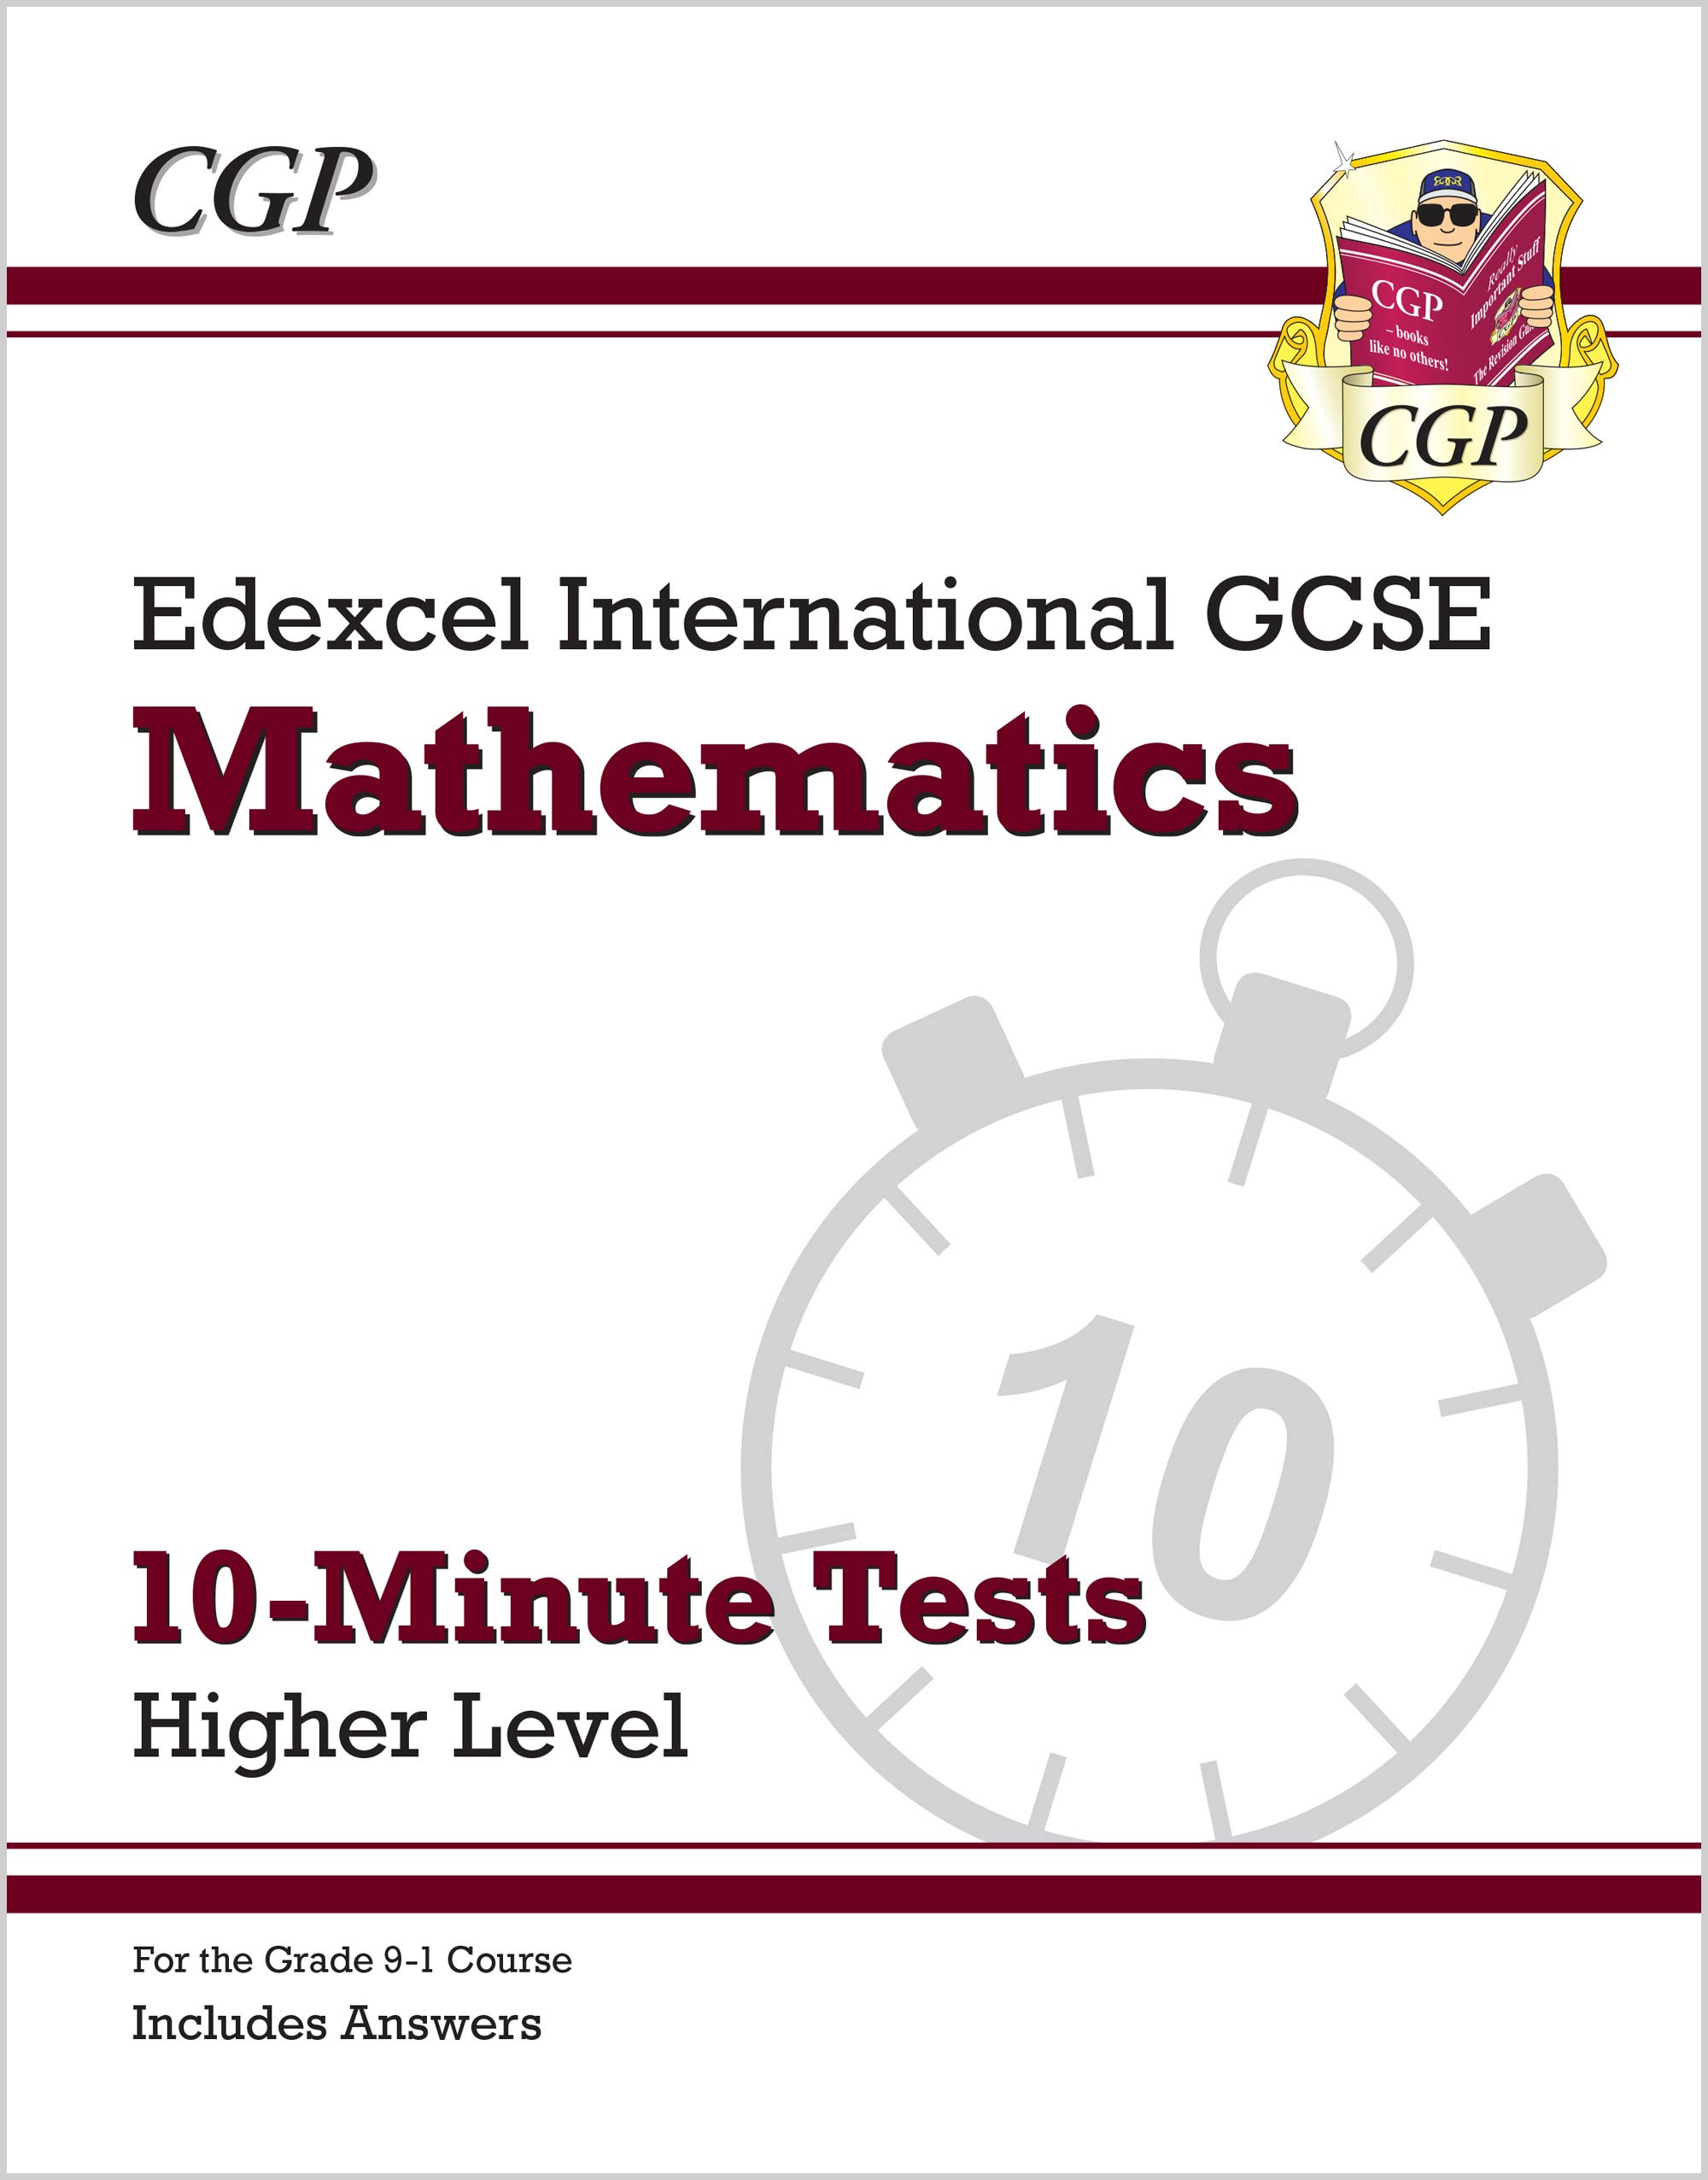 MEXPI41 - Grade 9-1 Edexcel International GCSE Maths 10-Minute Tests - Higher (includes Answers)